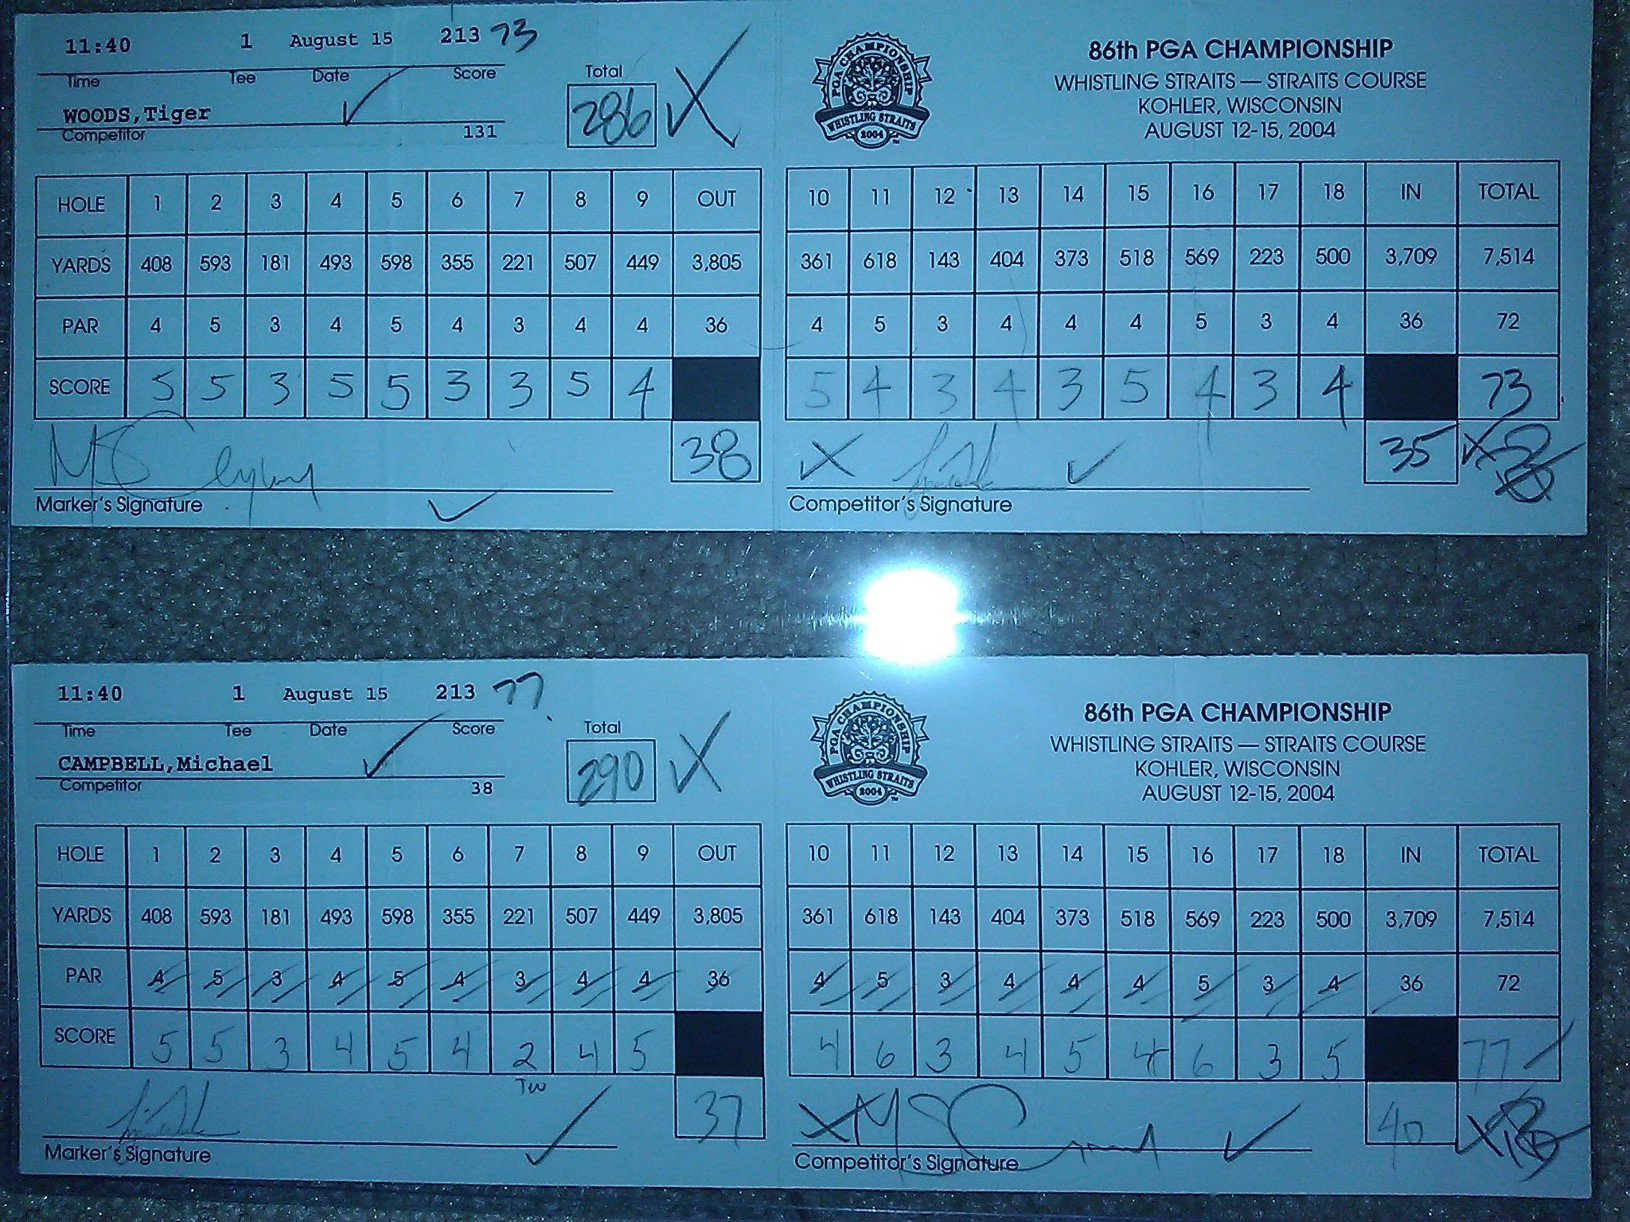 tiger woods 2005 british open scorecards